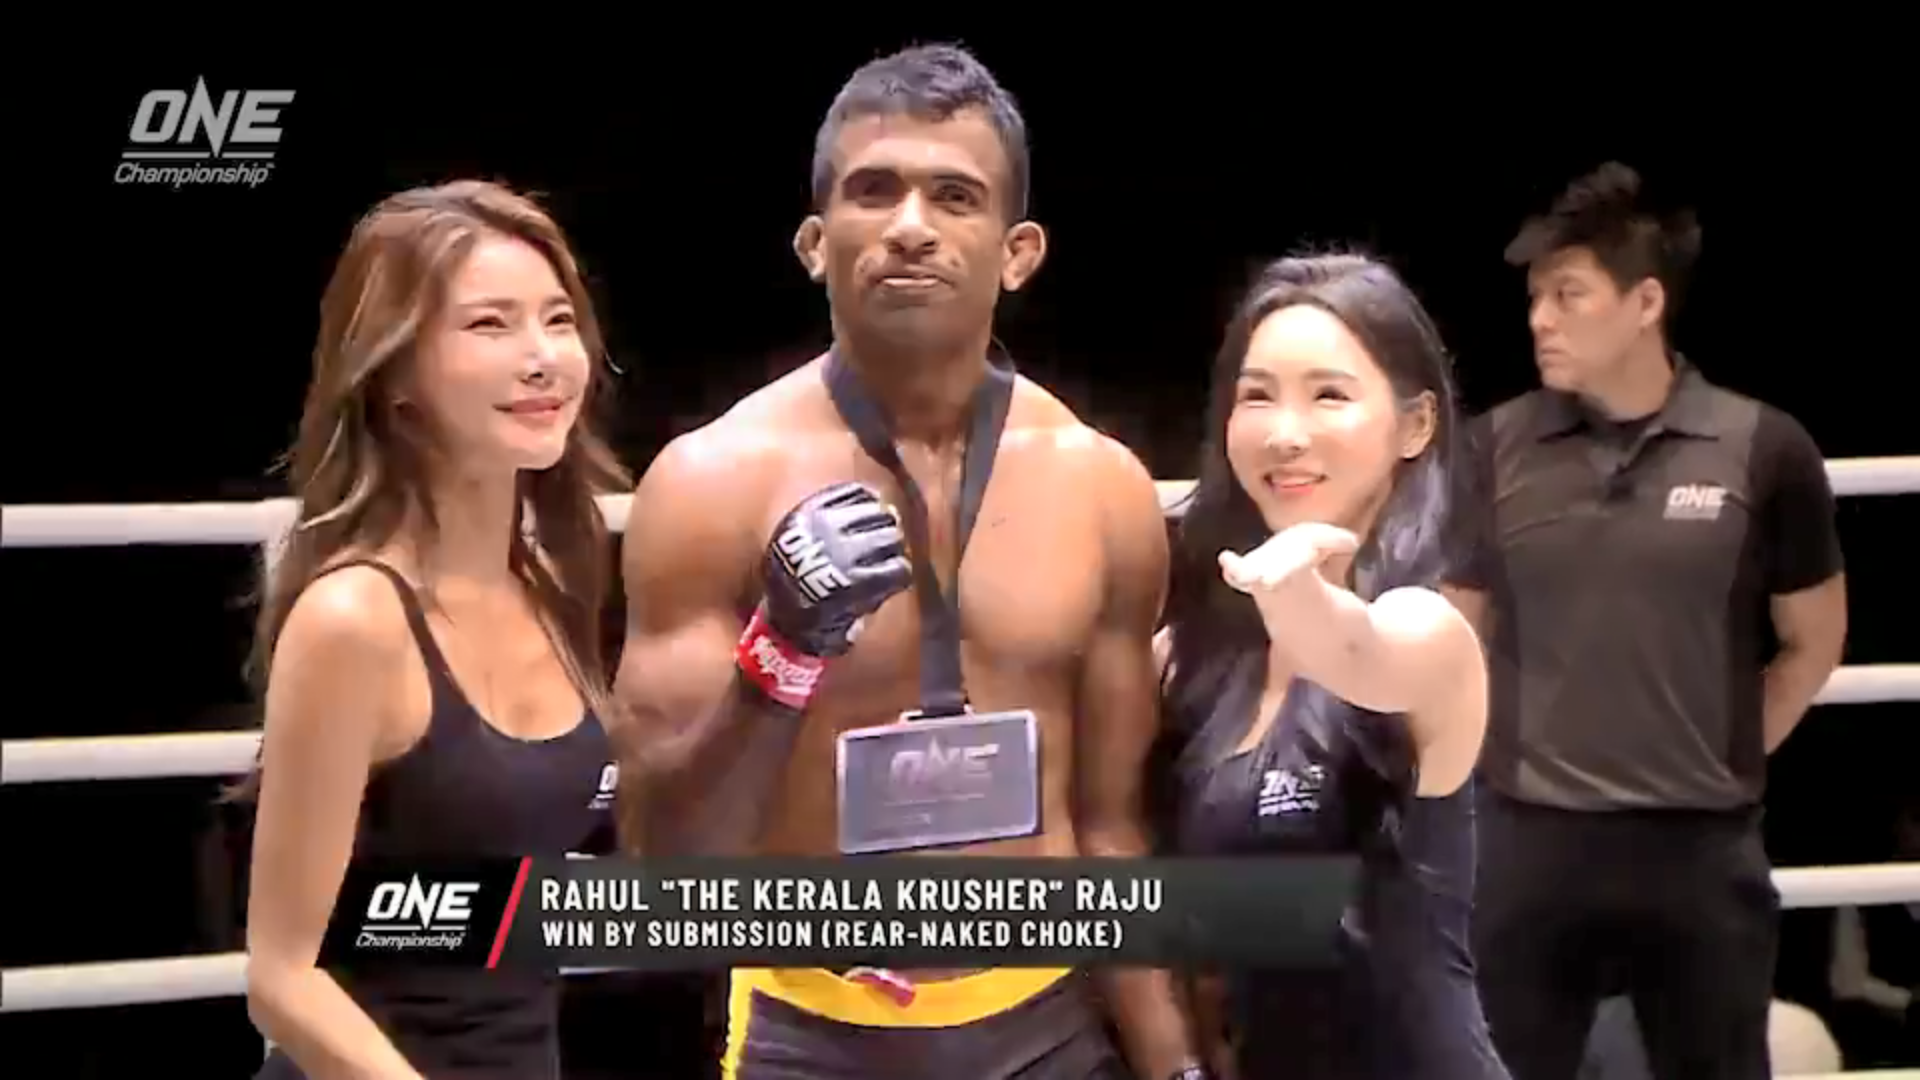 Indian Rahul Raju picks up a fantastic victory while Sage Northcutt is brutally knocked out in ONE debut - Rahul